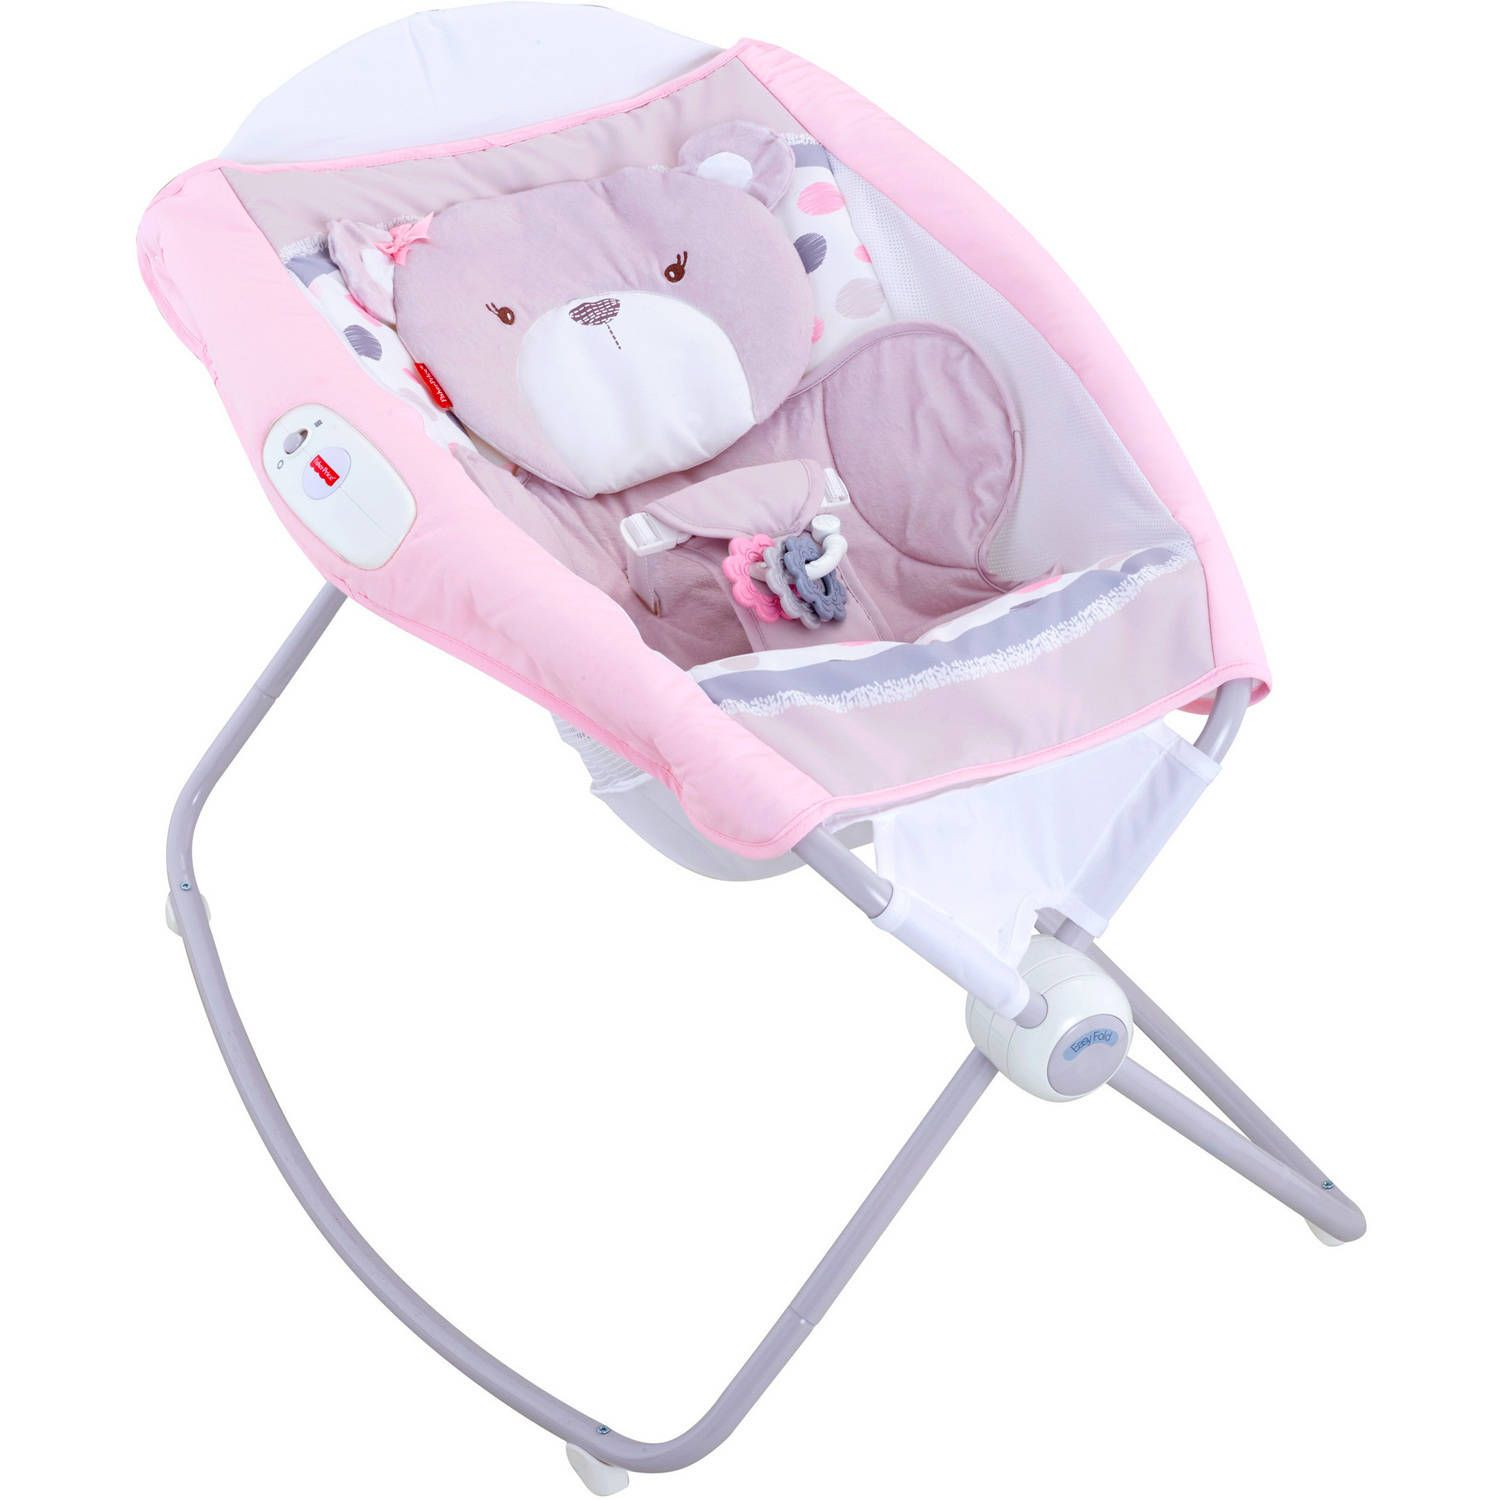 Here's the Fresh Image Of Walmart Baby Trend Pack N Play